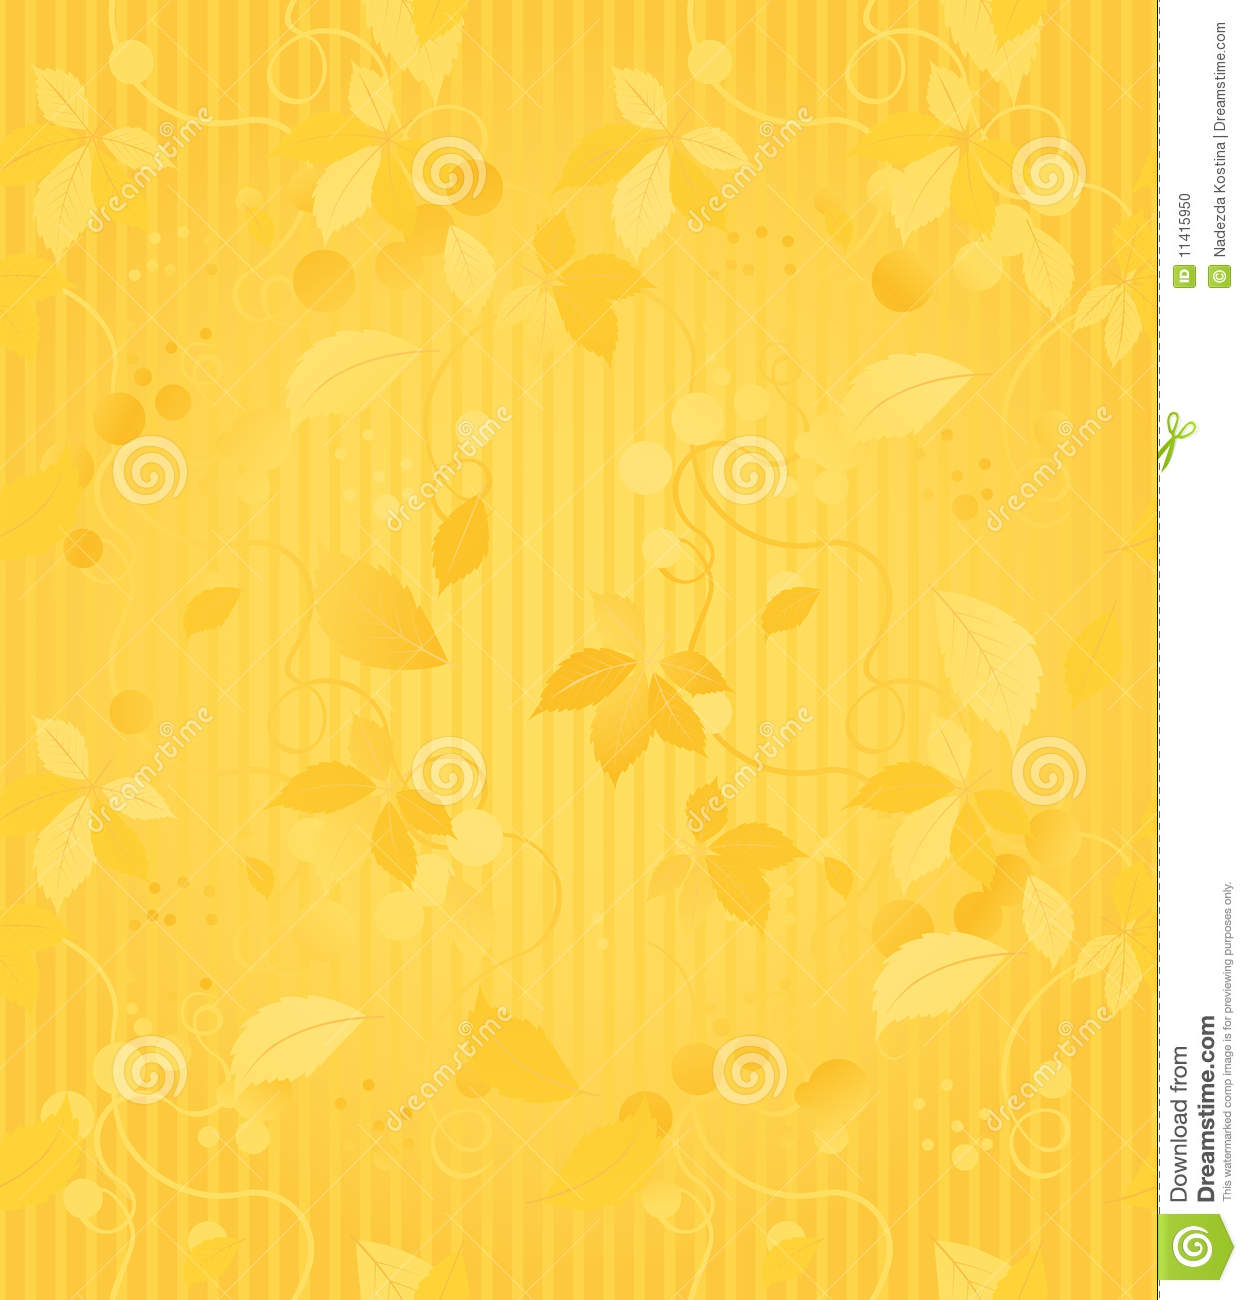 Elegant Seamless Wallpaper With A Leafy Design Curtain Patterns Texture